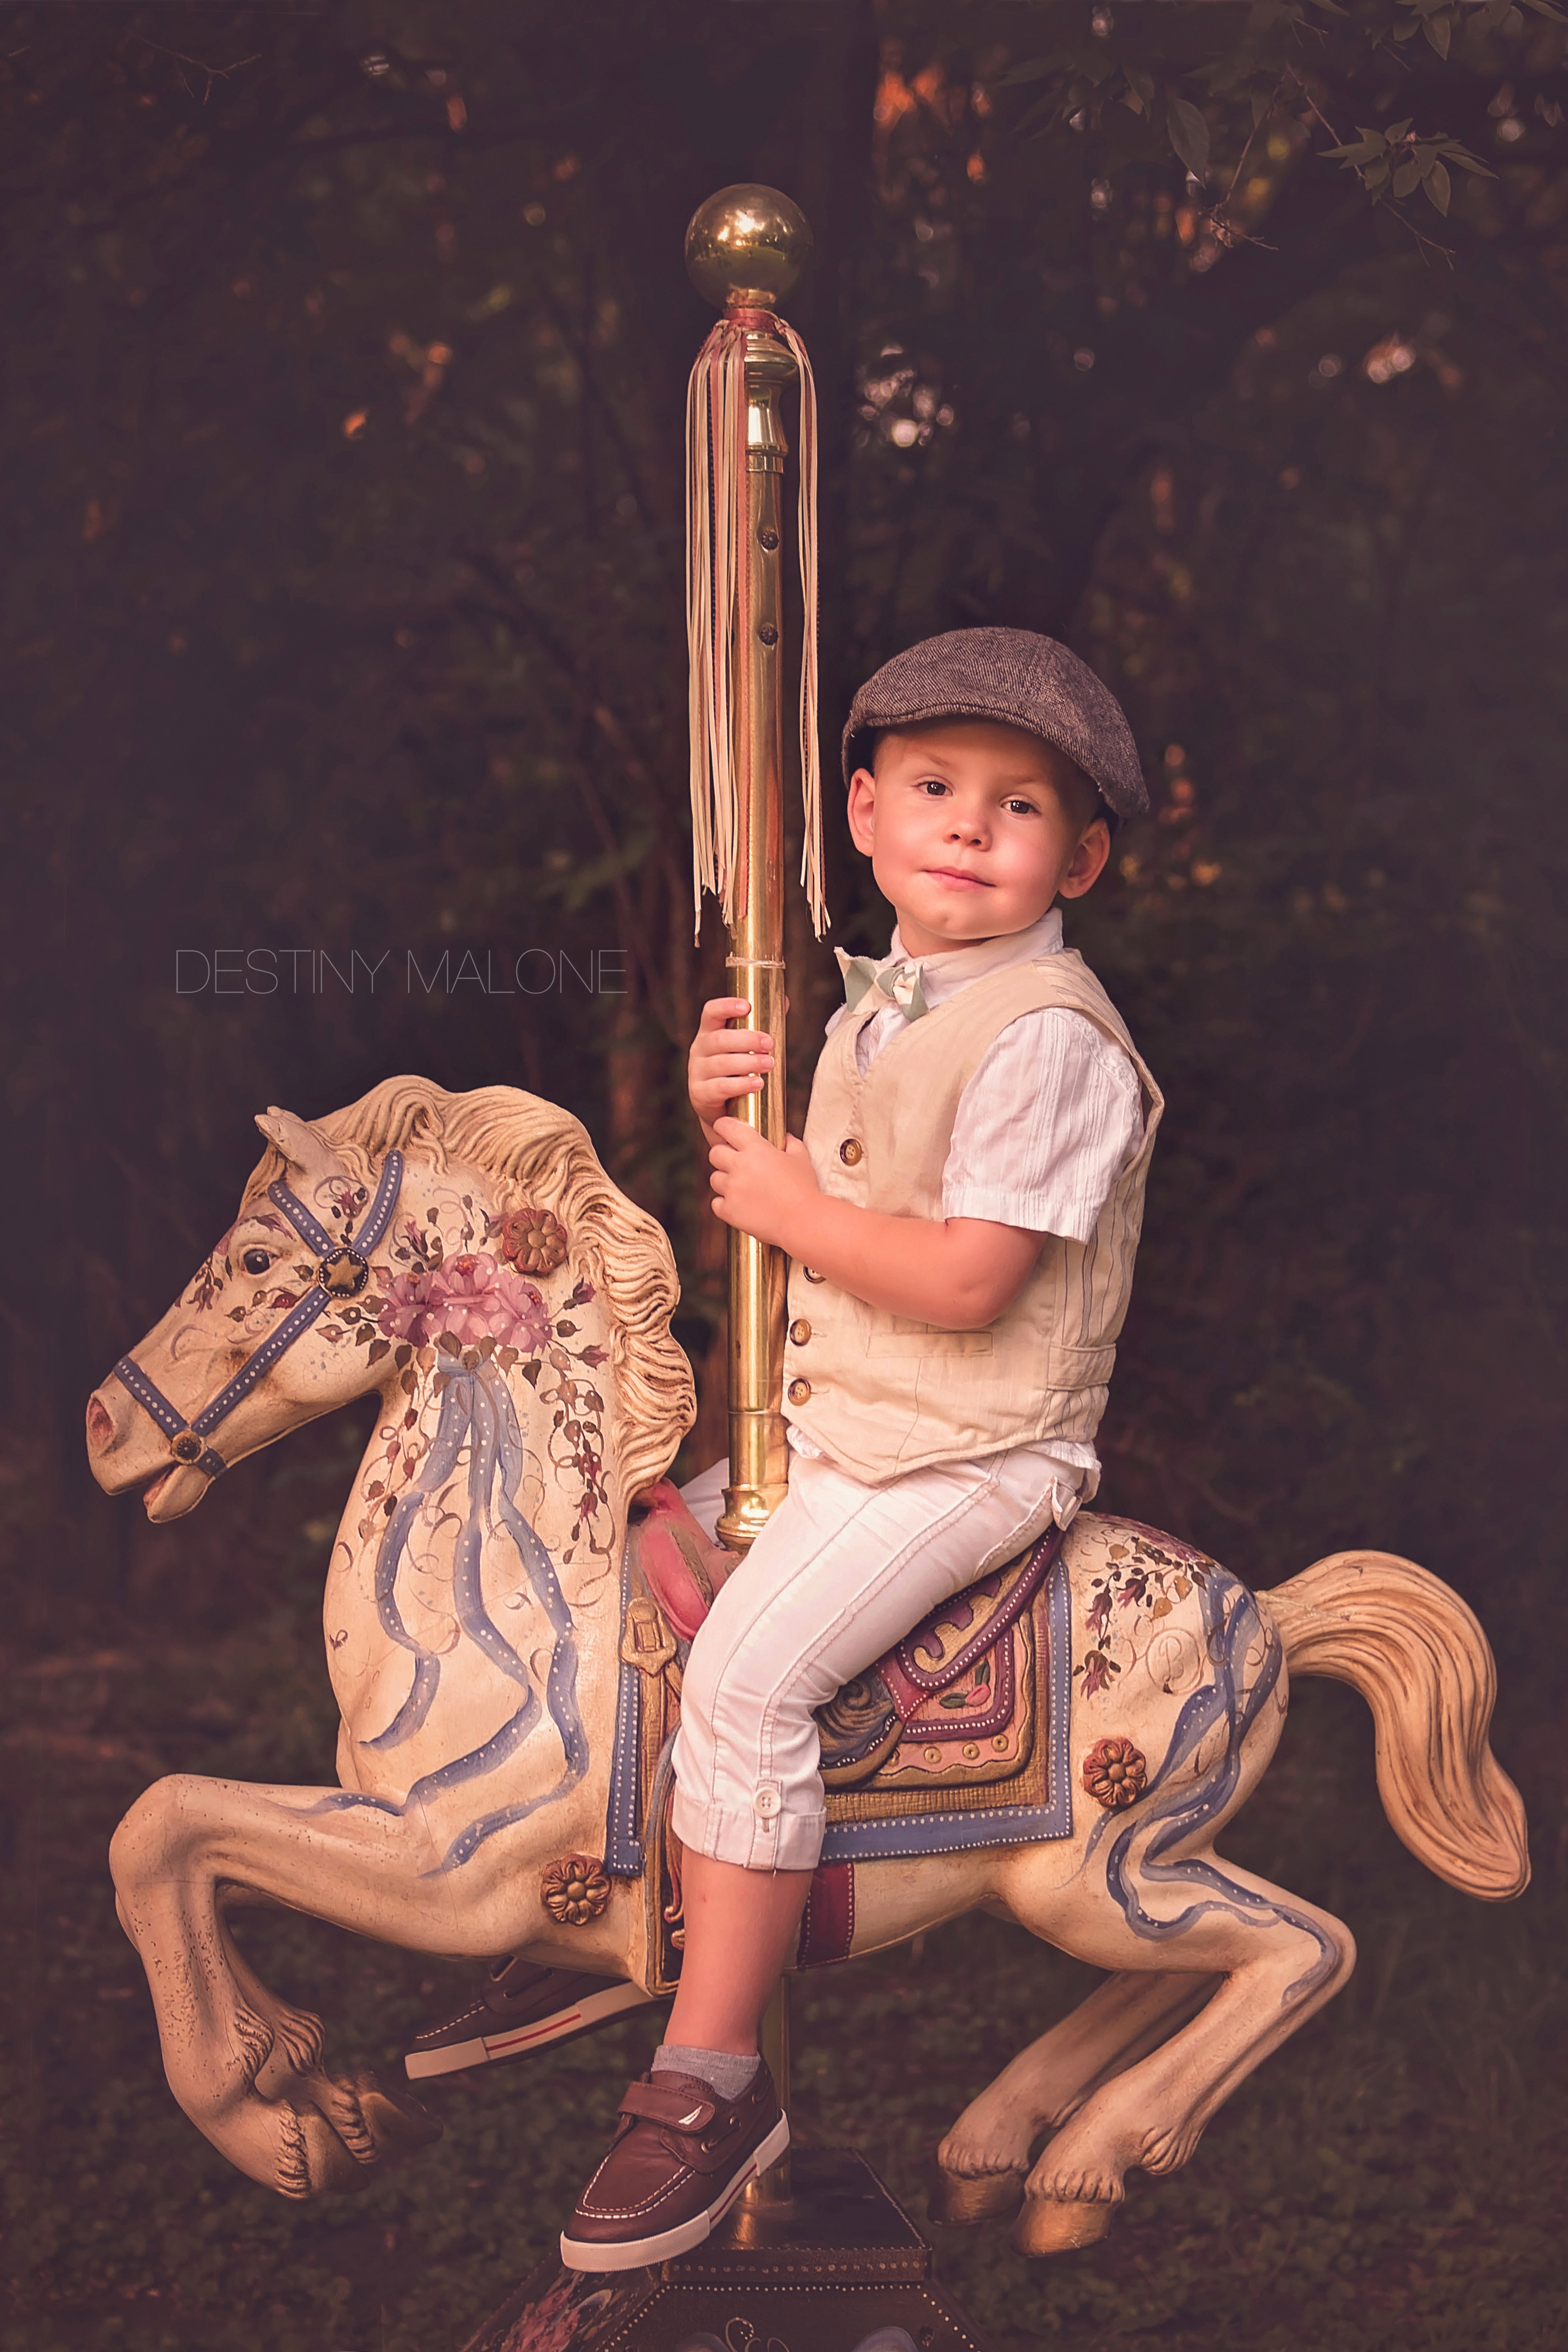 carousel prop photography